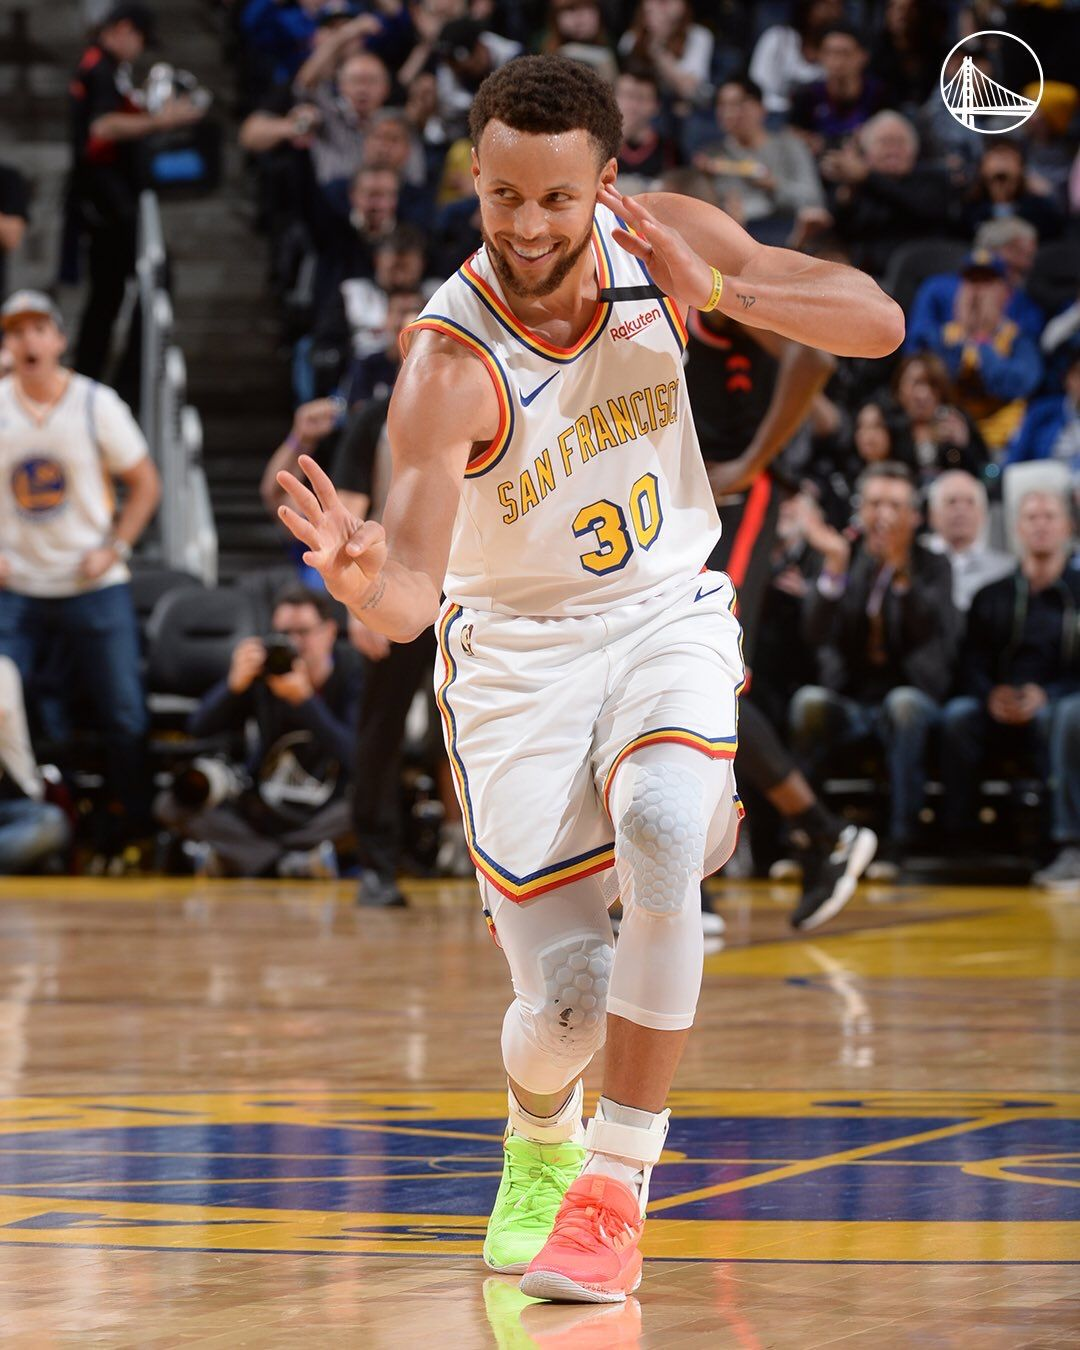 Pin by Stephen Miller on Stephen Curry in 2020 Nba